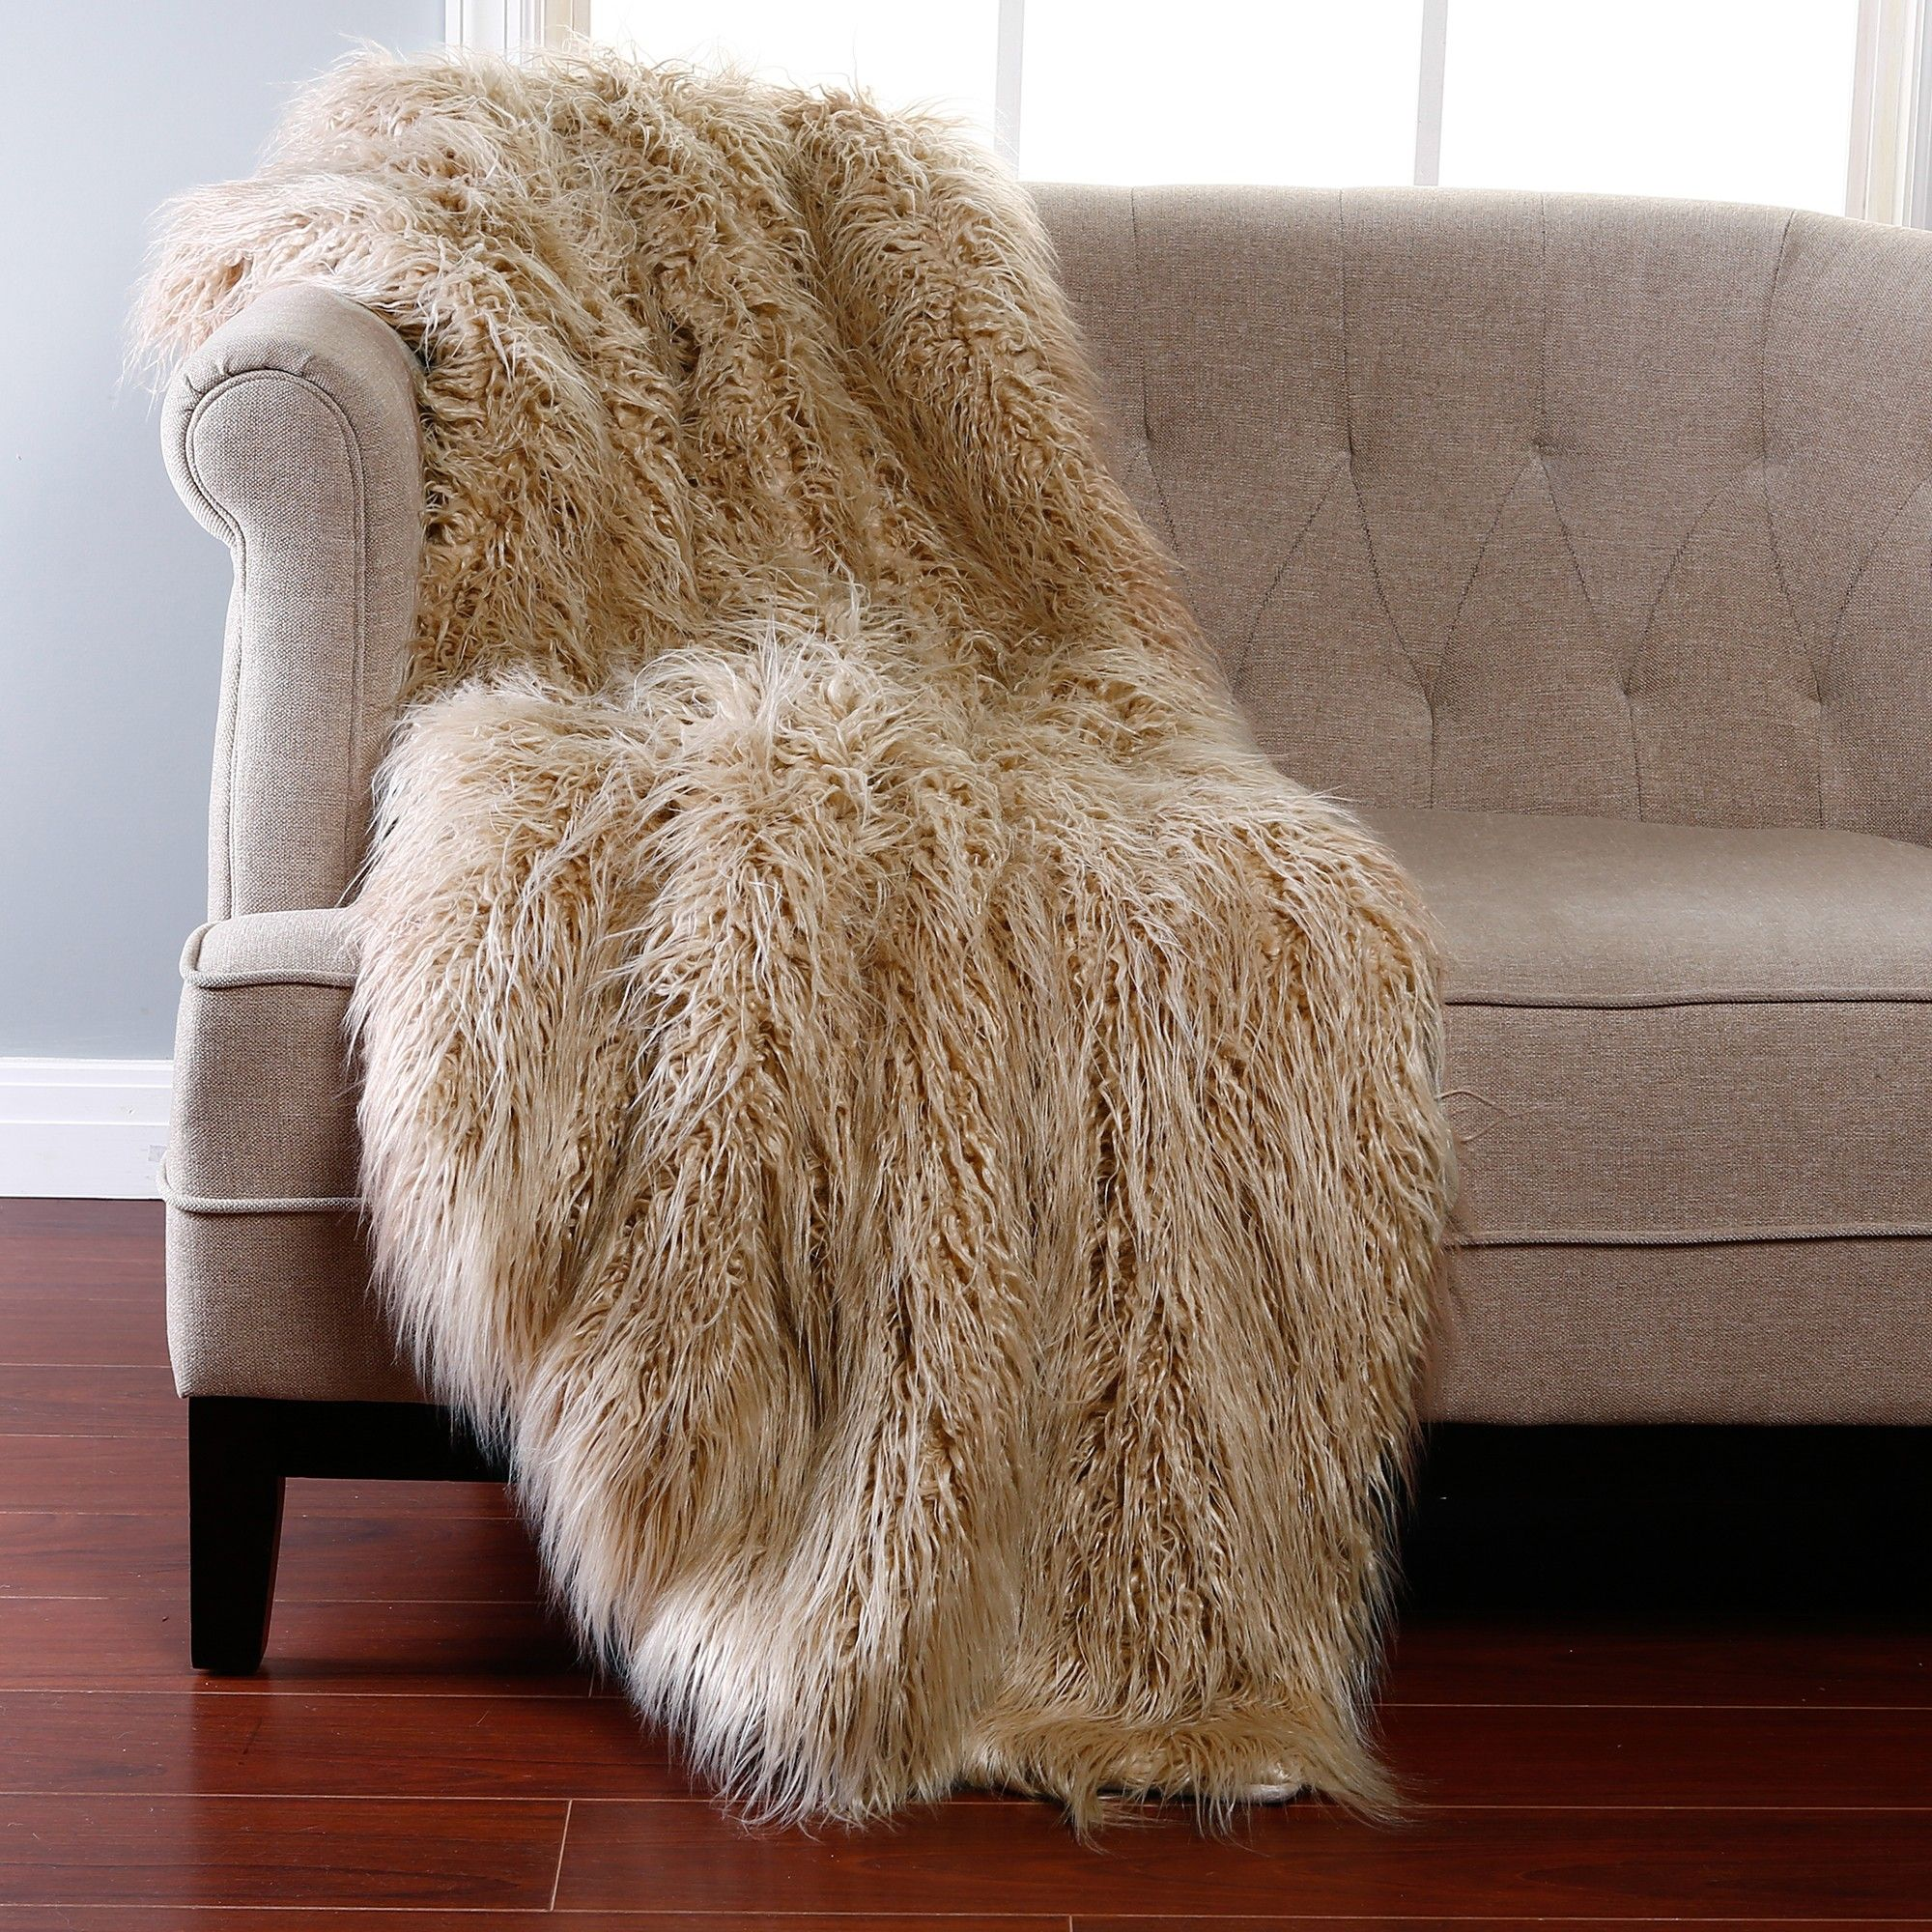 Warm Up Your Sofa Bed And Bed Using Faux Fur Throw Blanket ... for Sheep Fur Blanket  83fiz